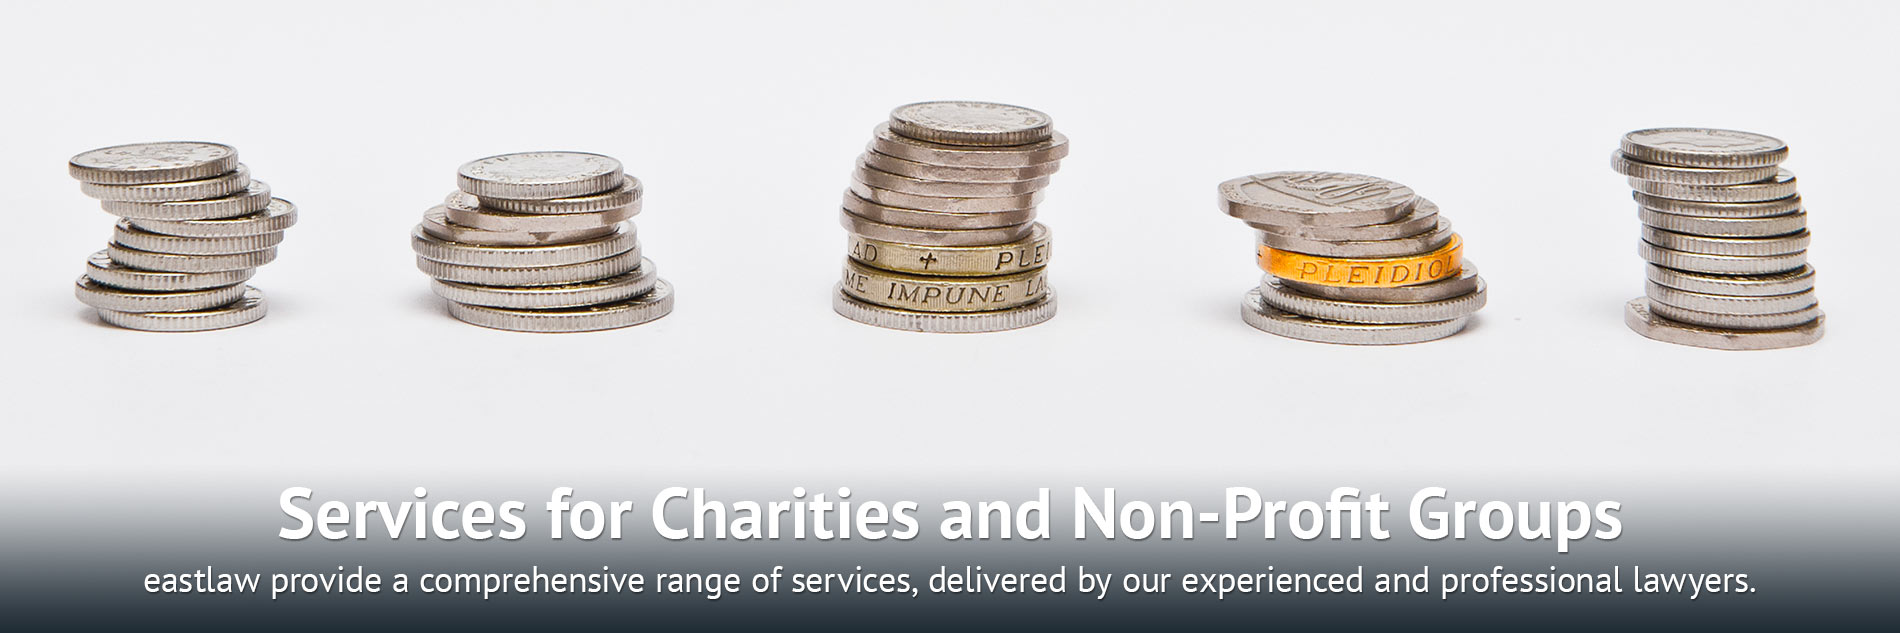 Services for Charities and Non-Profit Groups: eastlaw provide a comprehensive range of services, delivered by our experienced and professional lawyers.